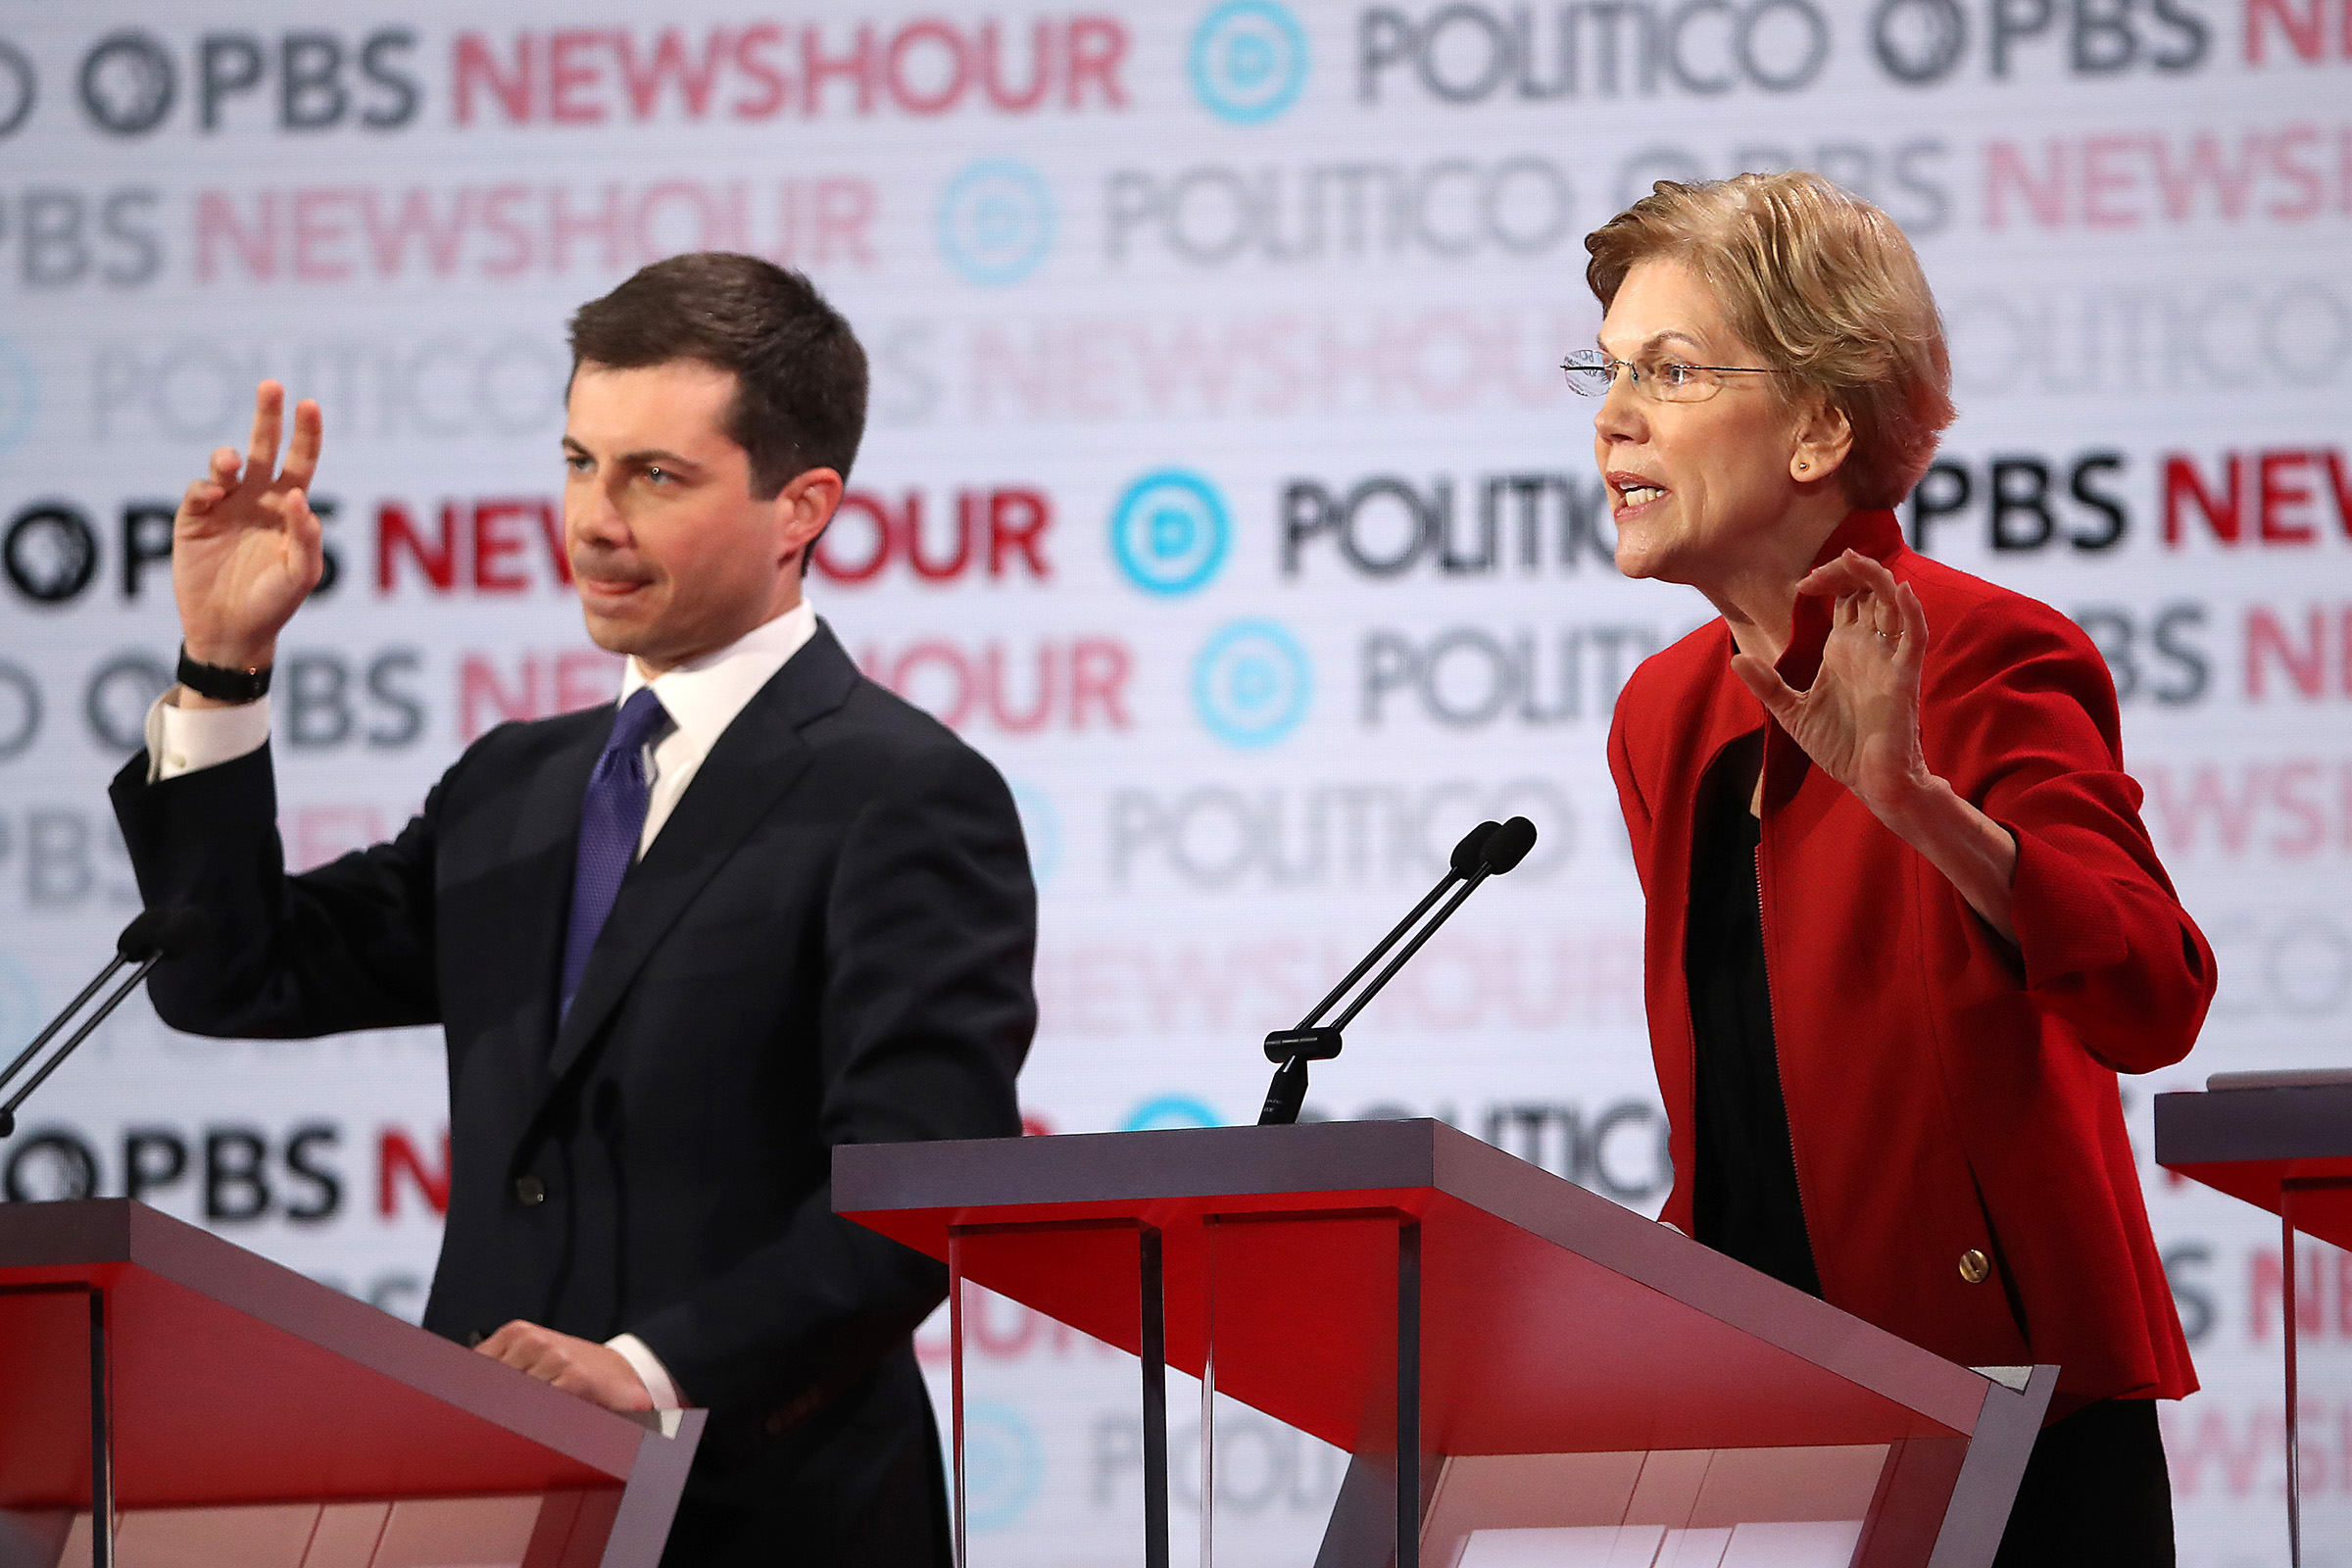 Sen. Elizabeth Warren (D-MA) speaks as South Bend, Indiana Mayor Pete Buttigieg listens during the Democratic presidential primary debate at Loyola Marymount University on Dec. 19, 2019 in Los Angeles, California.